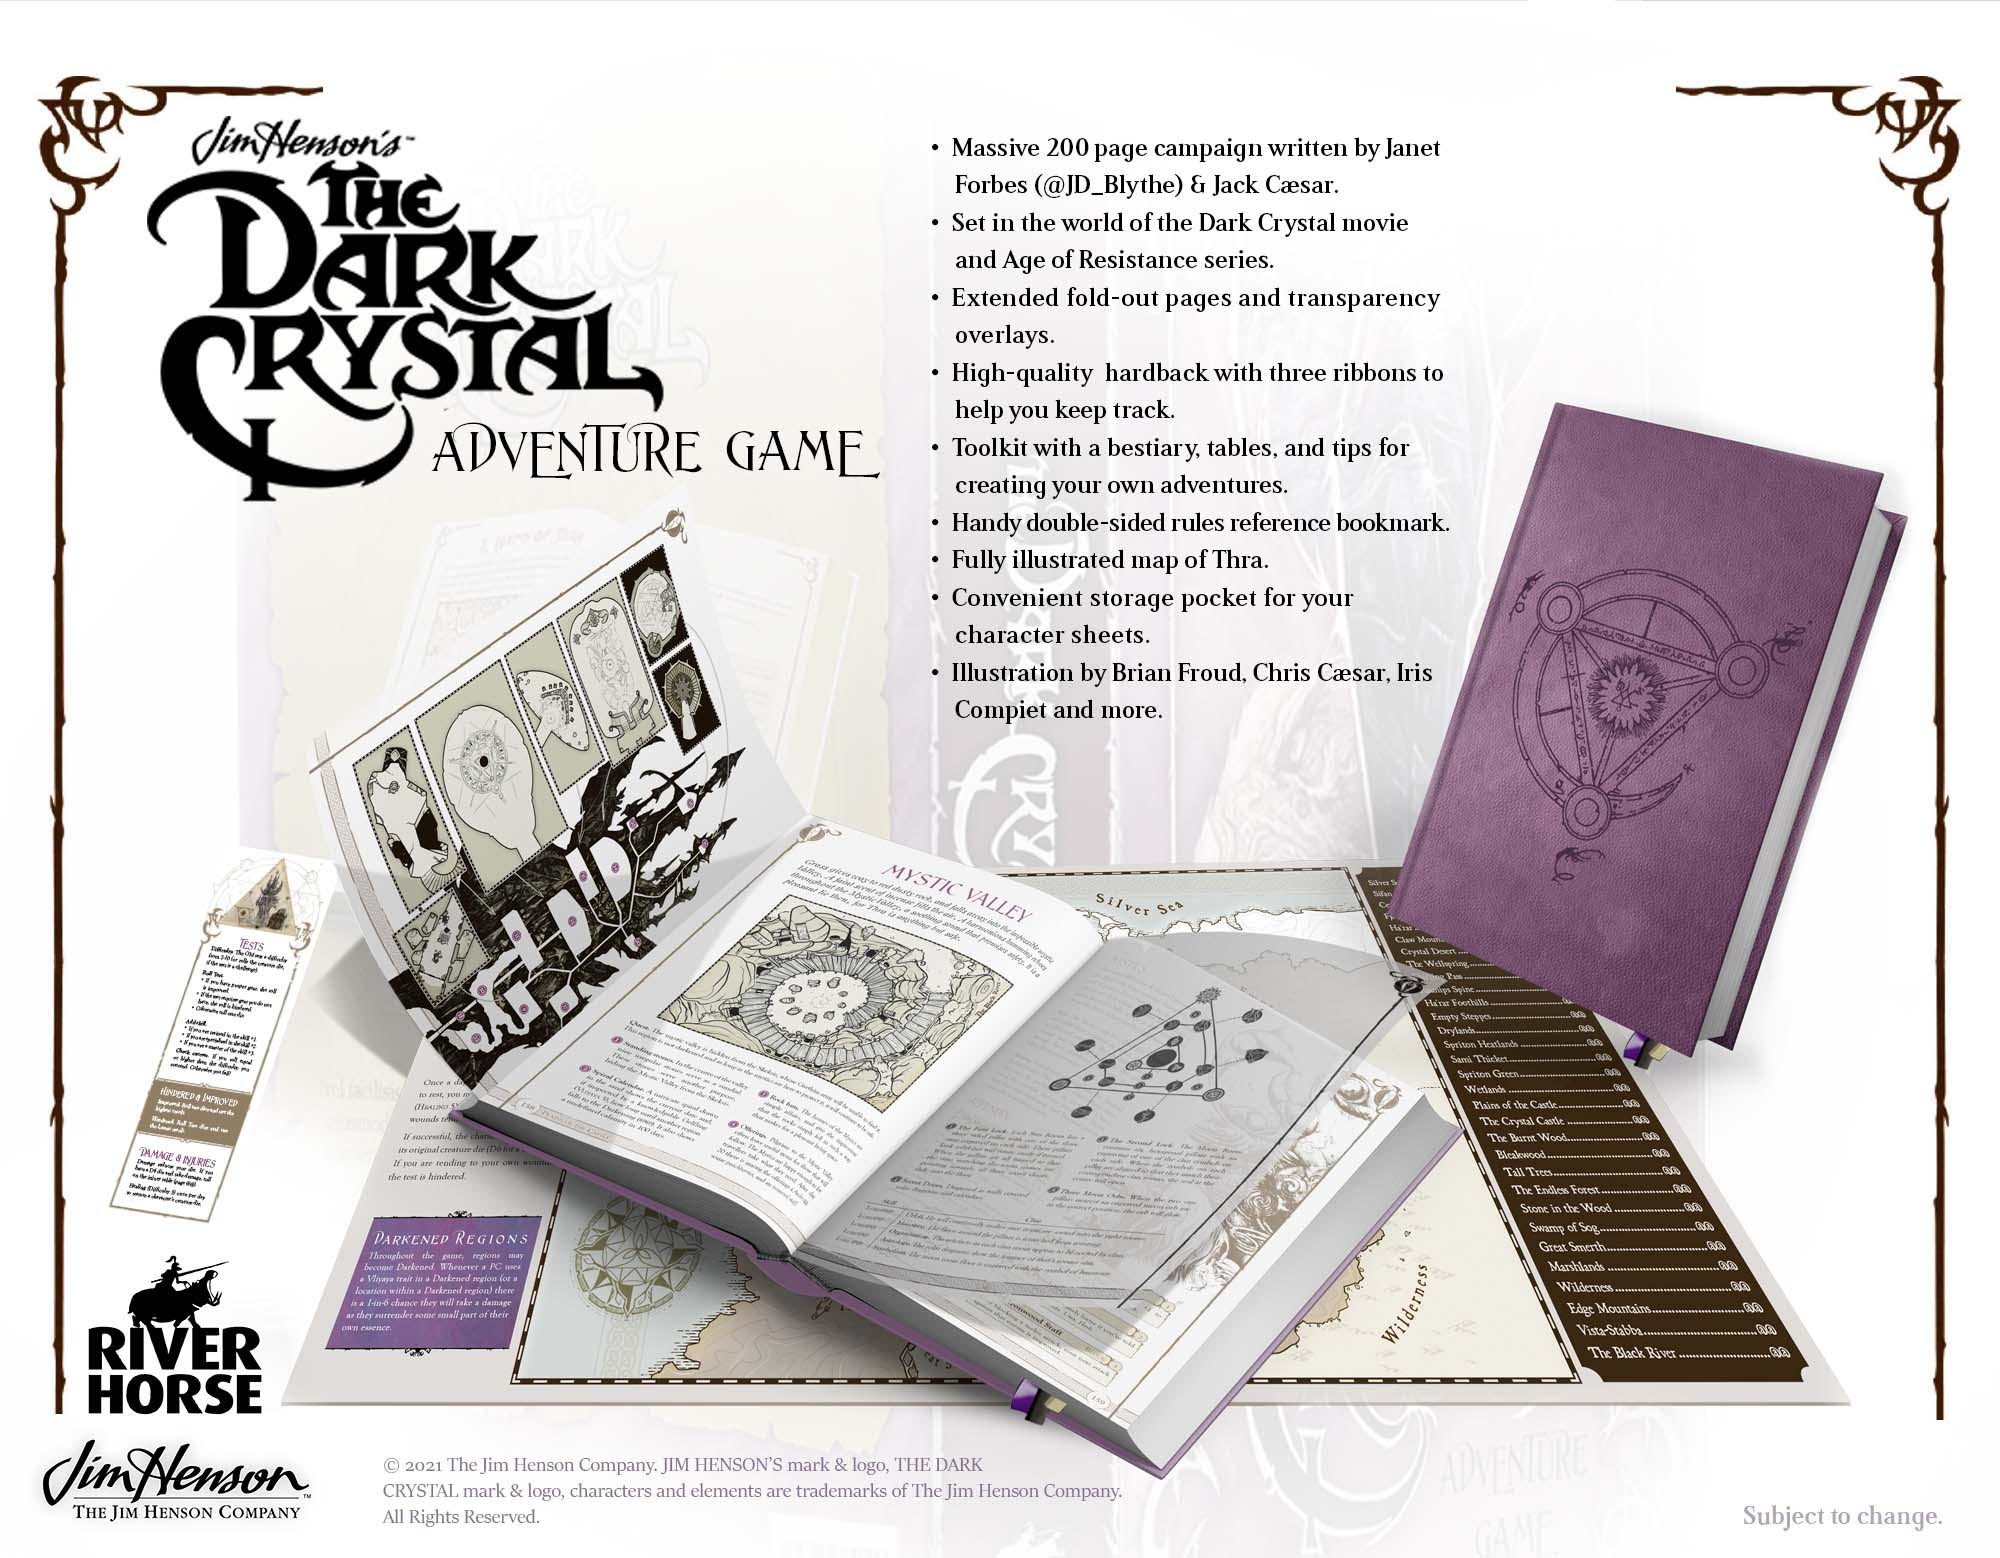 The Dark Crystal Adventure Game - River Horse